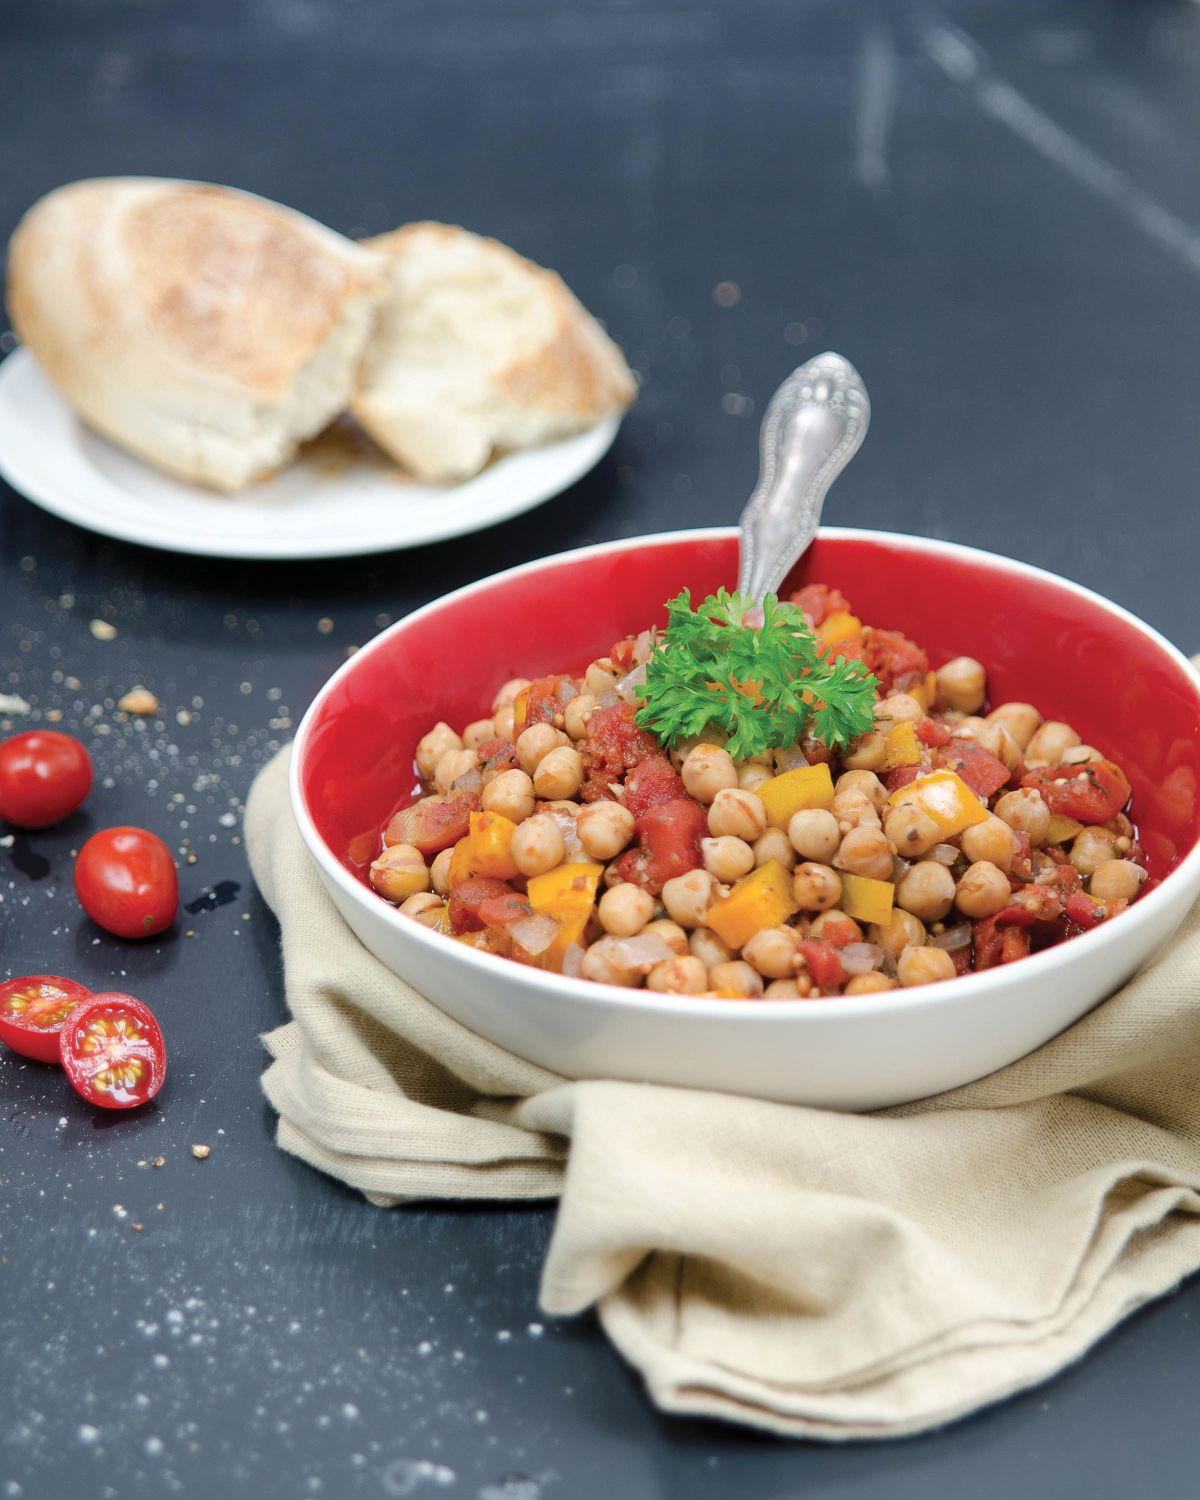 Bowl of chickpea ratatouille with bread on the side